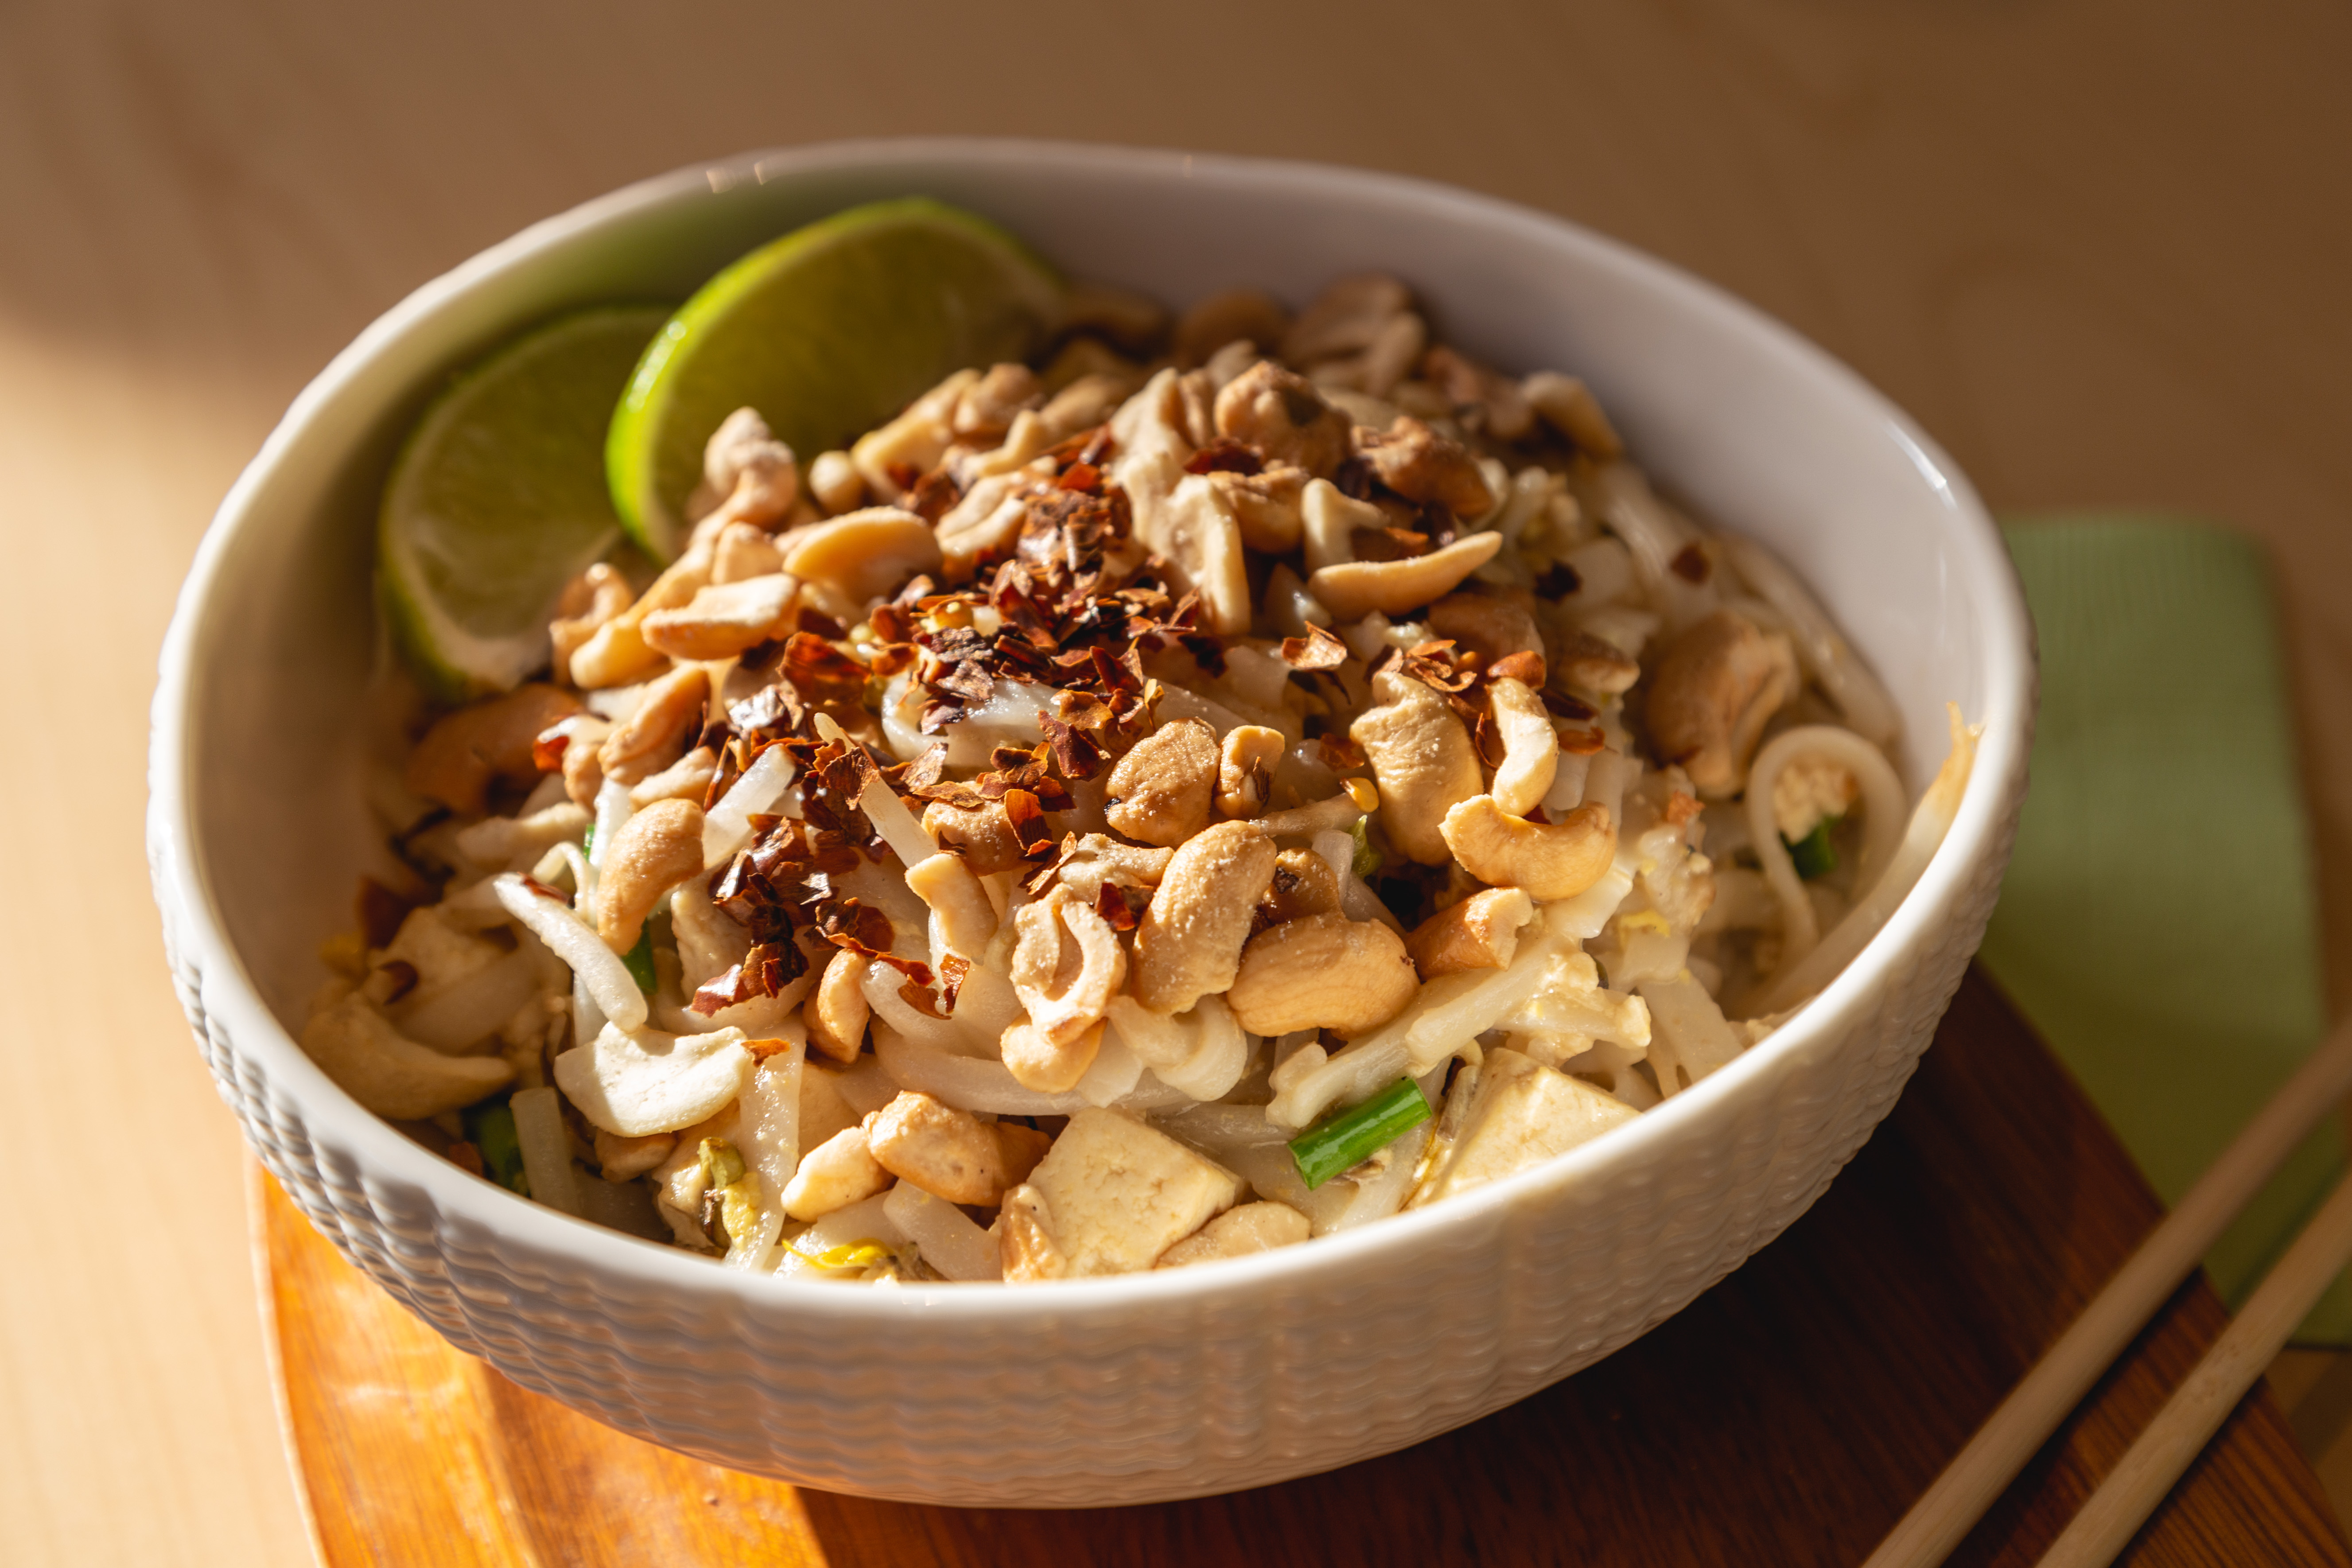 Pad Thai In A Bowl Topped With Cashews